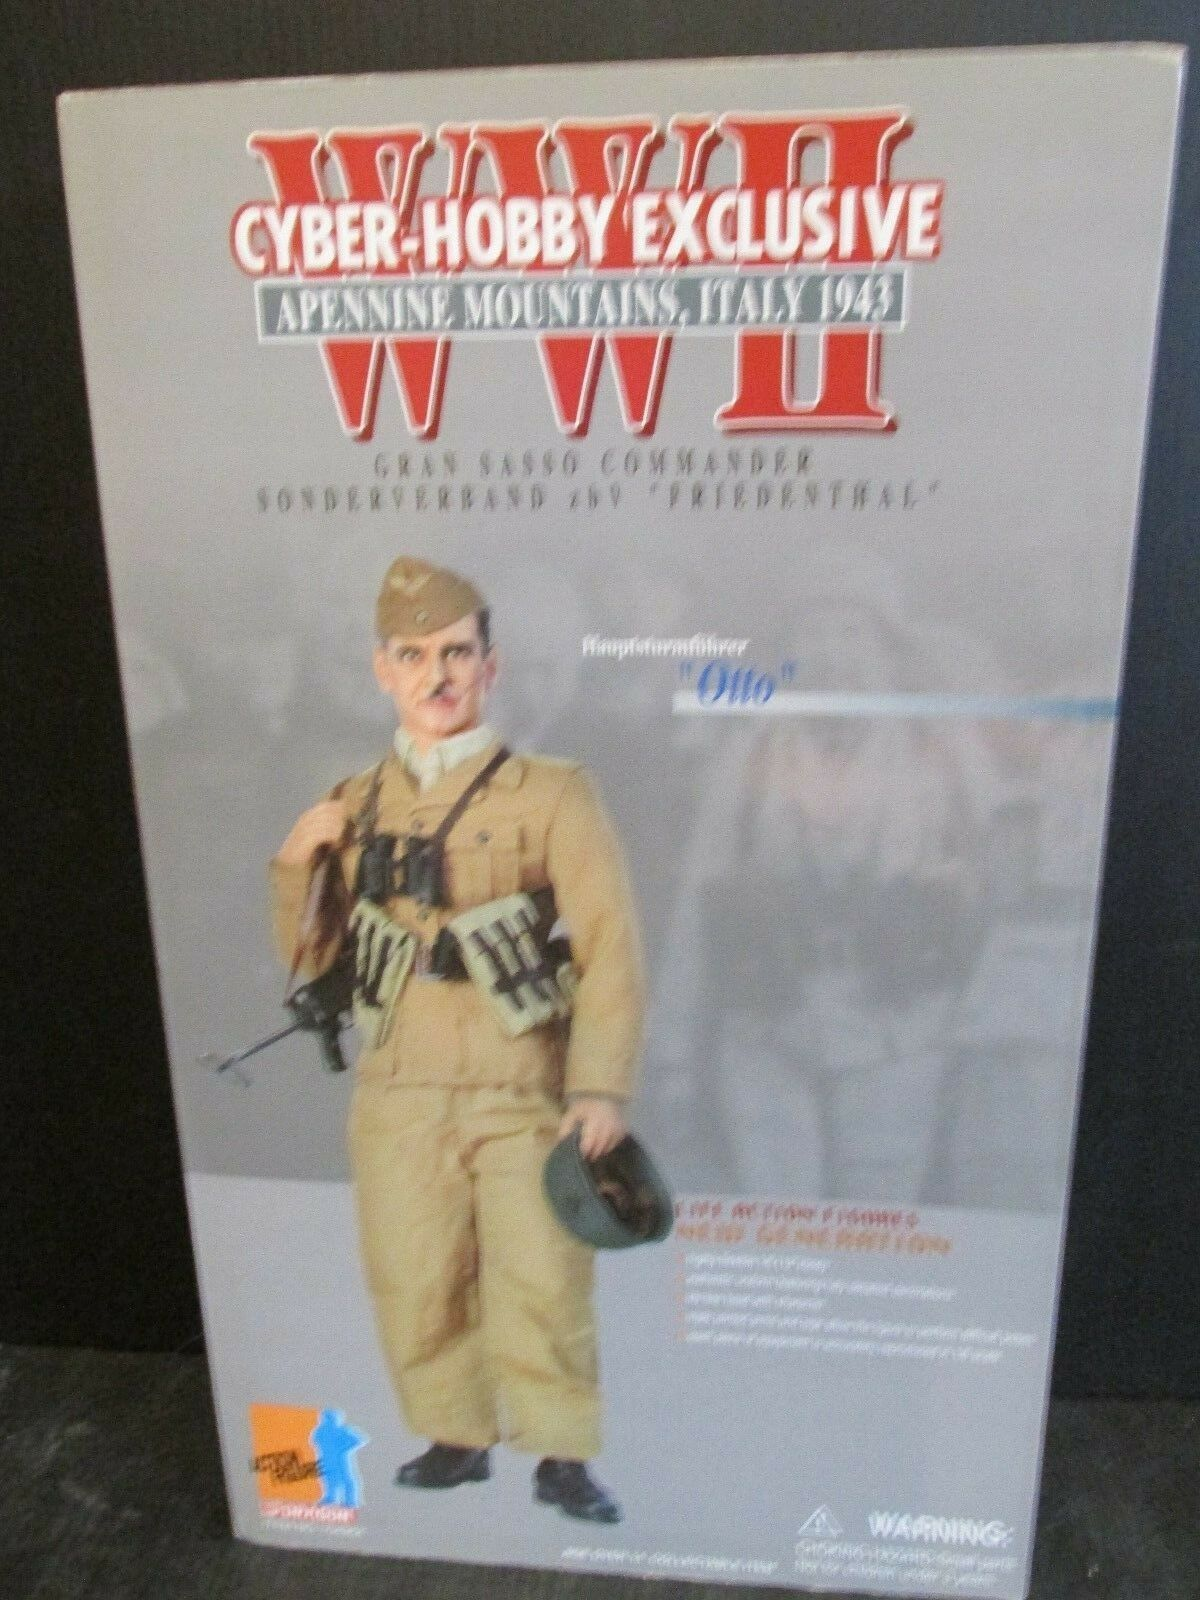 Dragon Cyber-Hobby Exclusive WW11 APENNINE MOUNTAINS ITALY 1943  OTTO